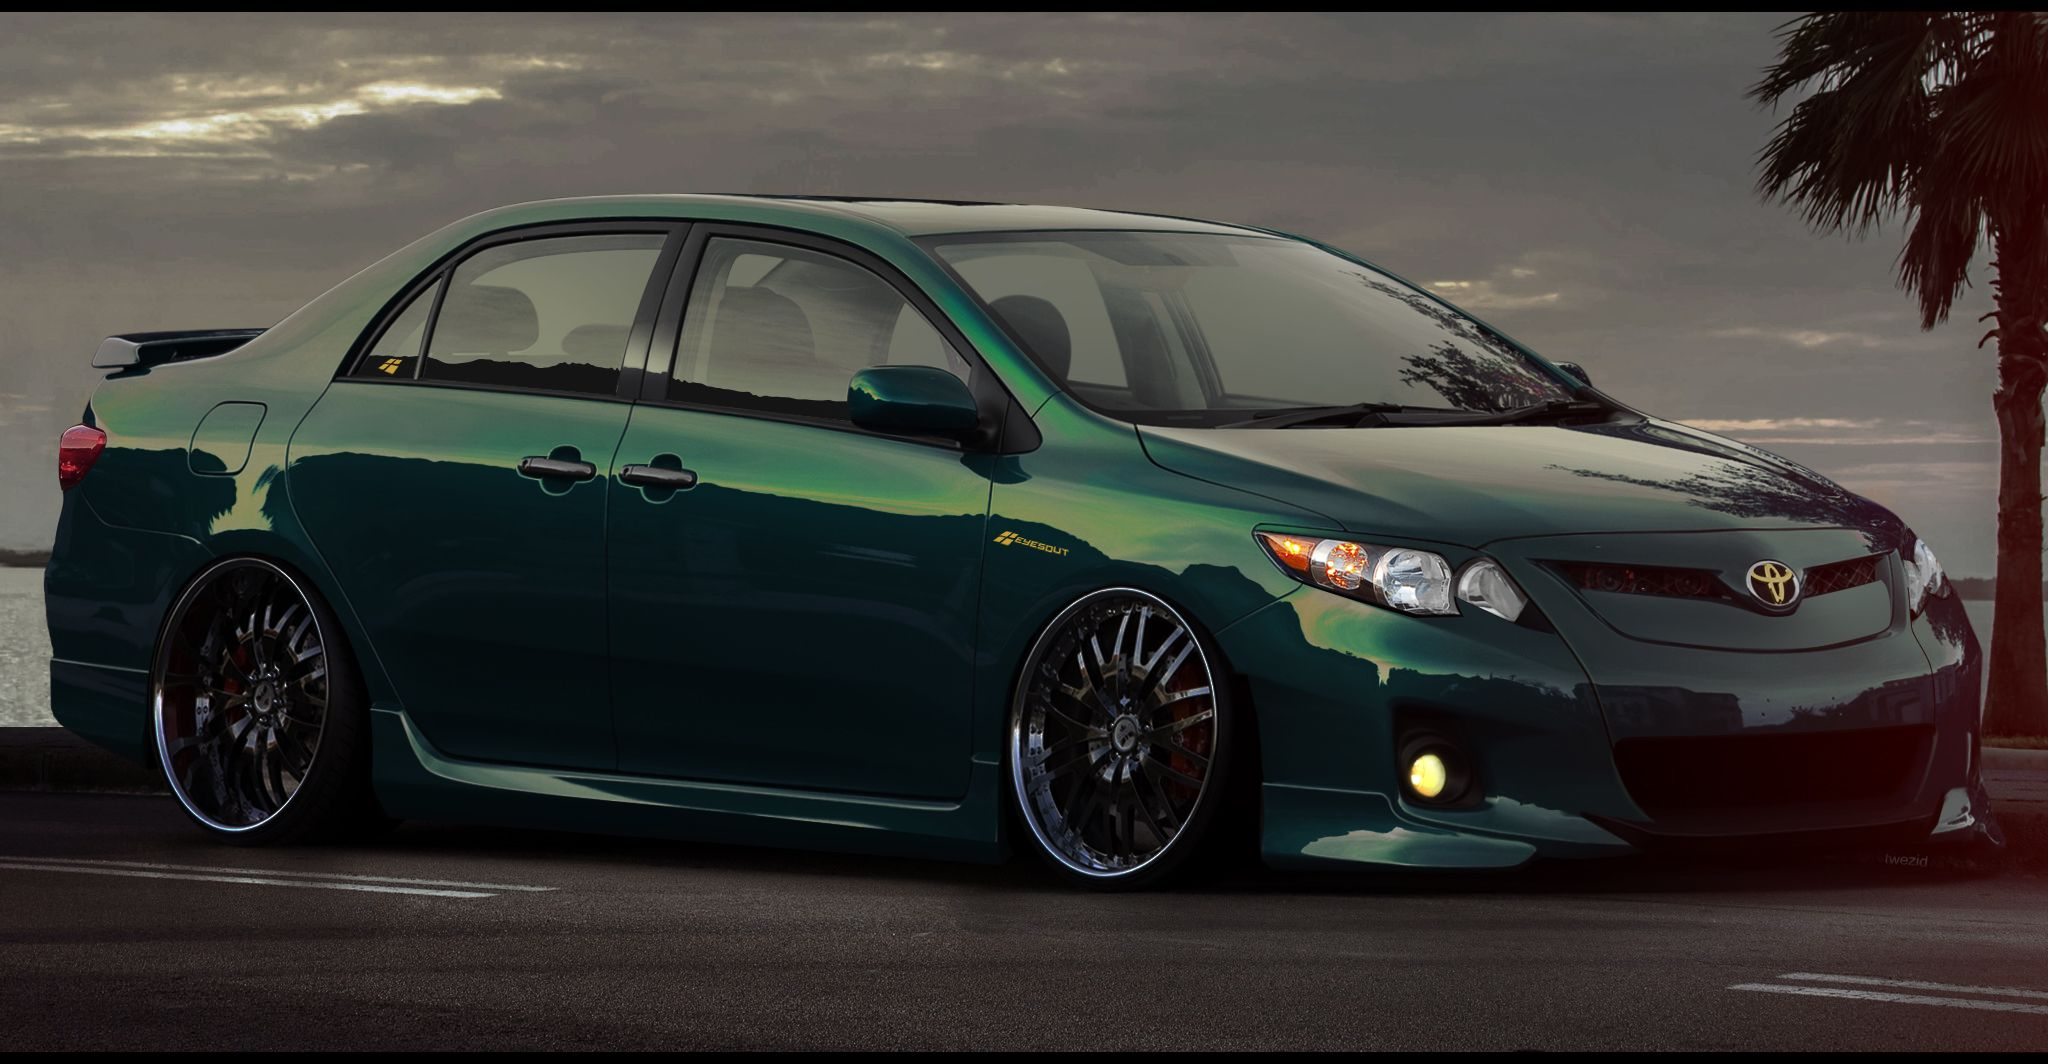 2013 corolla with body kit | Downloads | Cars | Pinterest | Toyota ...